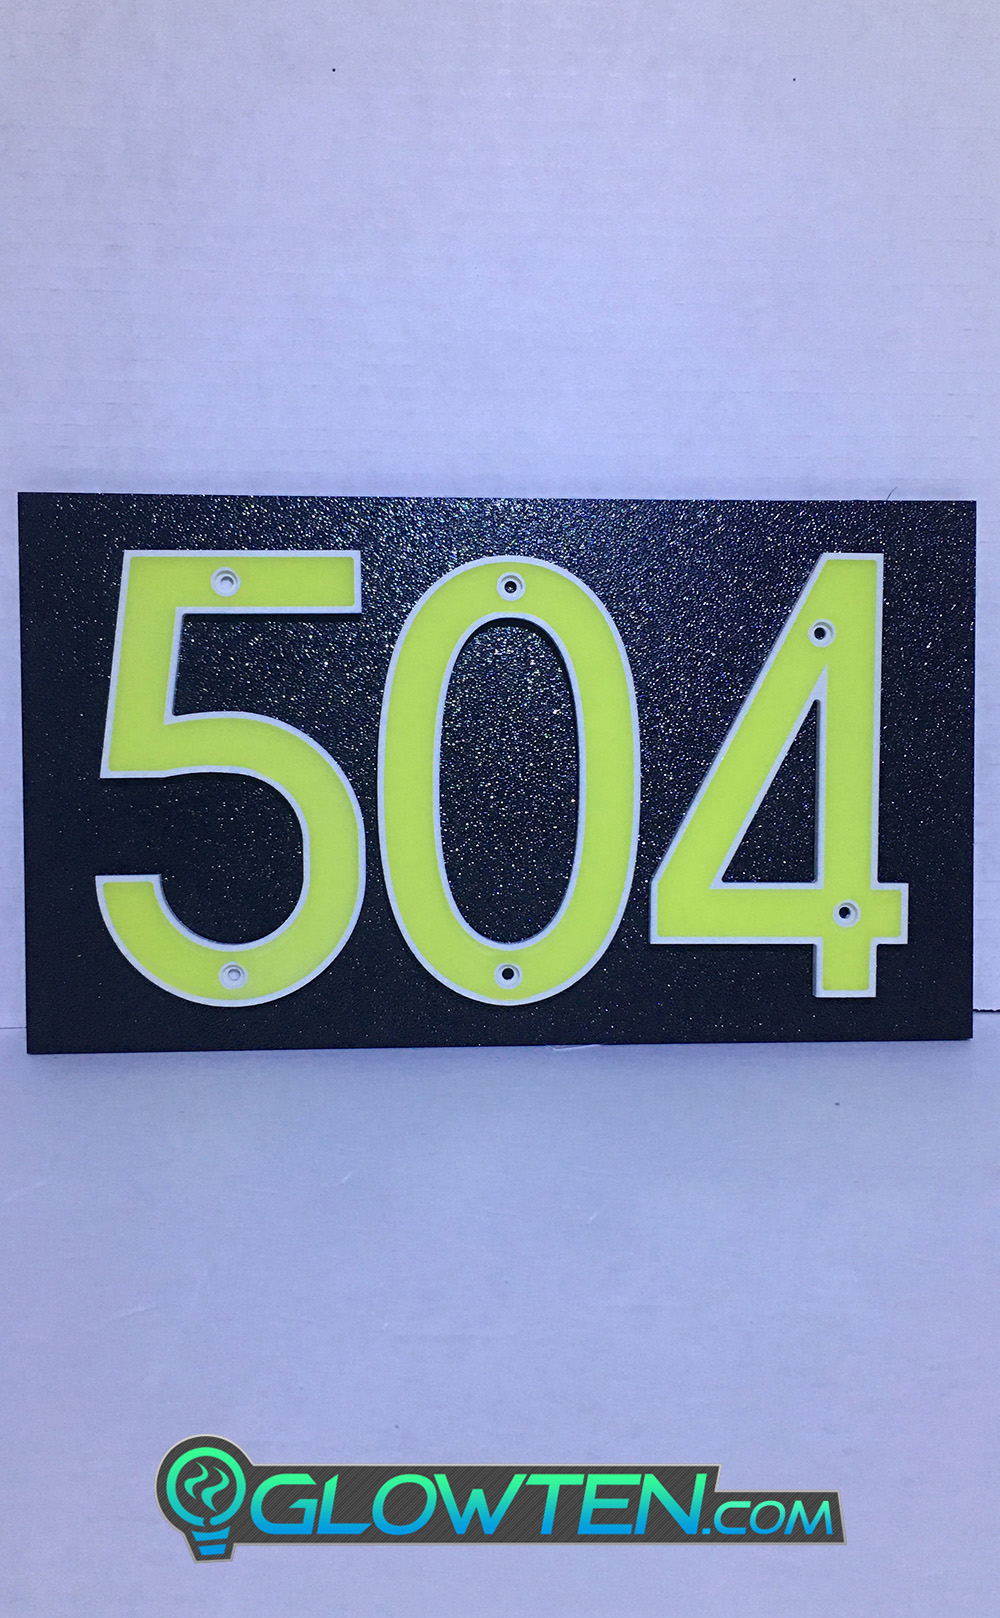 GLOWTEN.com - Applications In Front Or Back Yard Of Houses, Homes, Warehouses, Workshops, Addresses, Banners, Advertising Warning Caution Sign, Other Decor Decorations Etc, Abs Plastic Photoluminescent Pigment THREE 3 NUMBERS with BLACK PLAQUE BACKING Glow In Dark House Address Number Horizontal Eco Friendly Photoluminescent Sign ABS Material Price For Whole Set Phosphorescent Neon Color Flourescent Green Markings picture photo cap preview pic image search 1